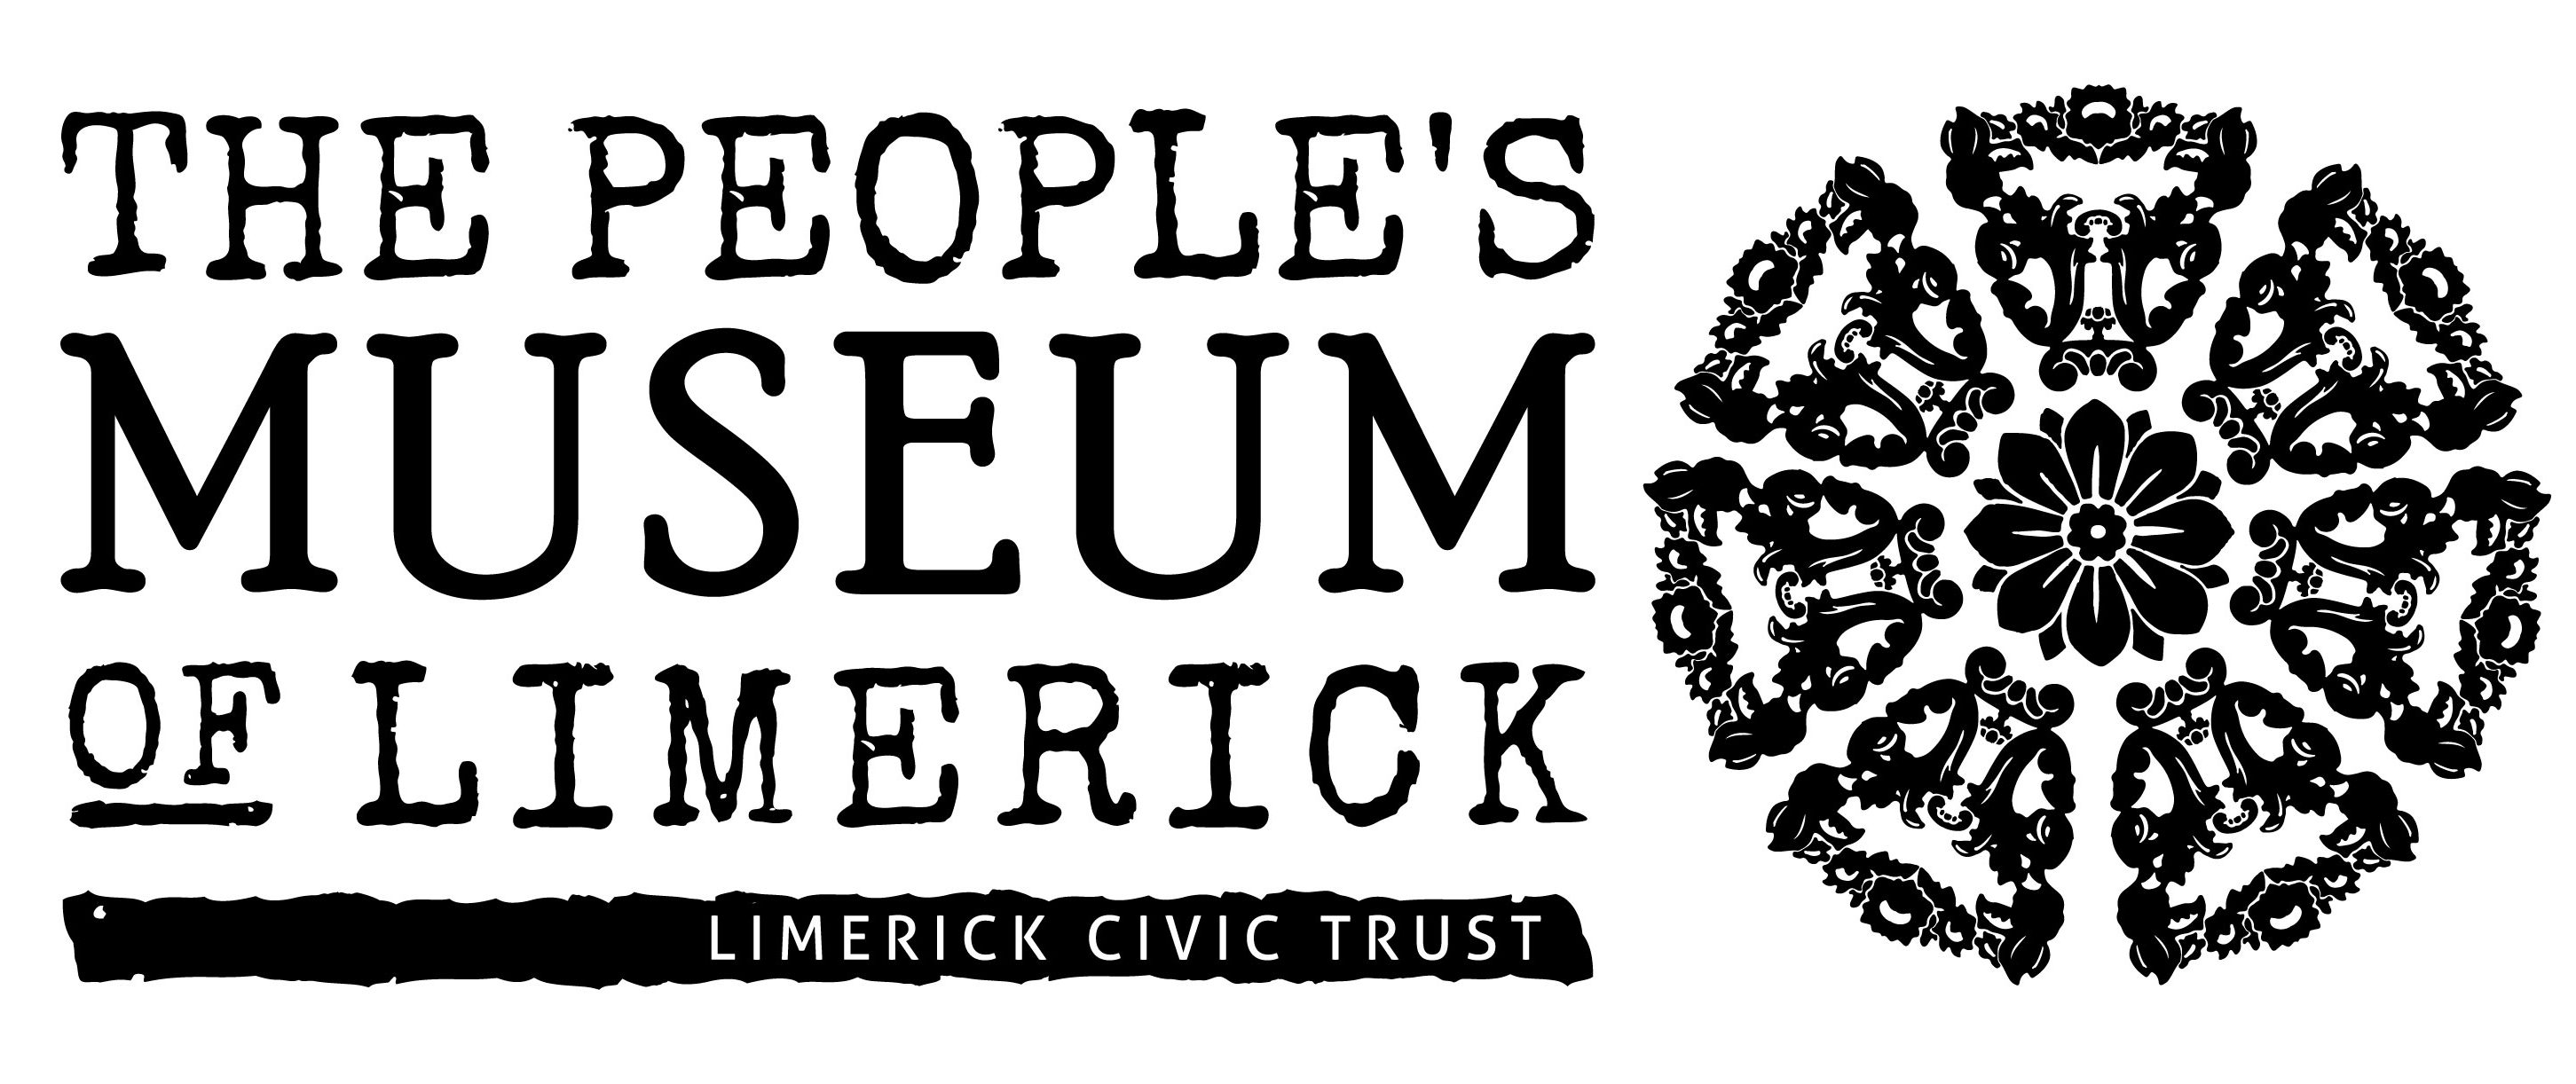 The People's Museum of Limerick